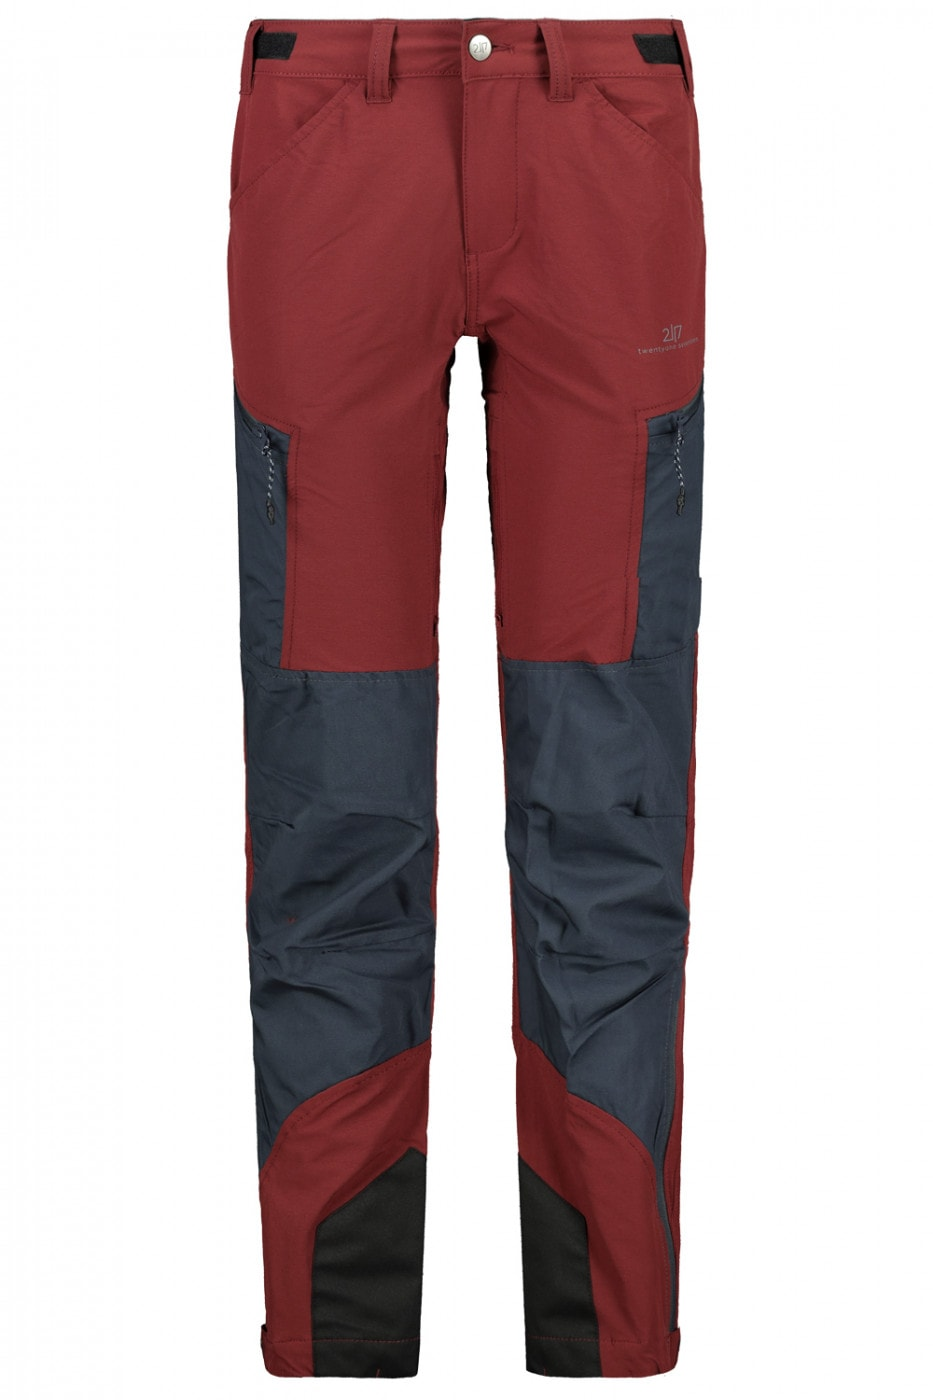 Women's outdoor pants 2117 LUNNA